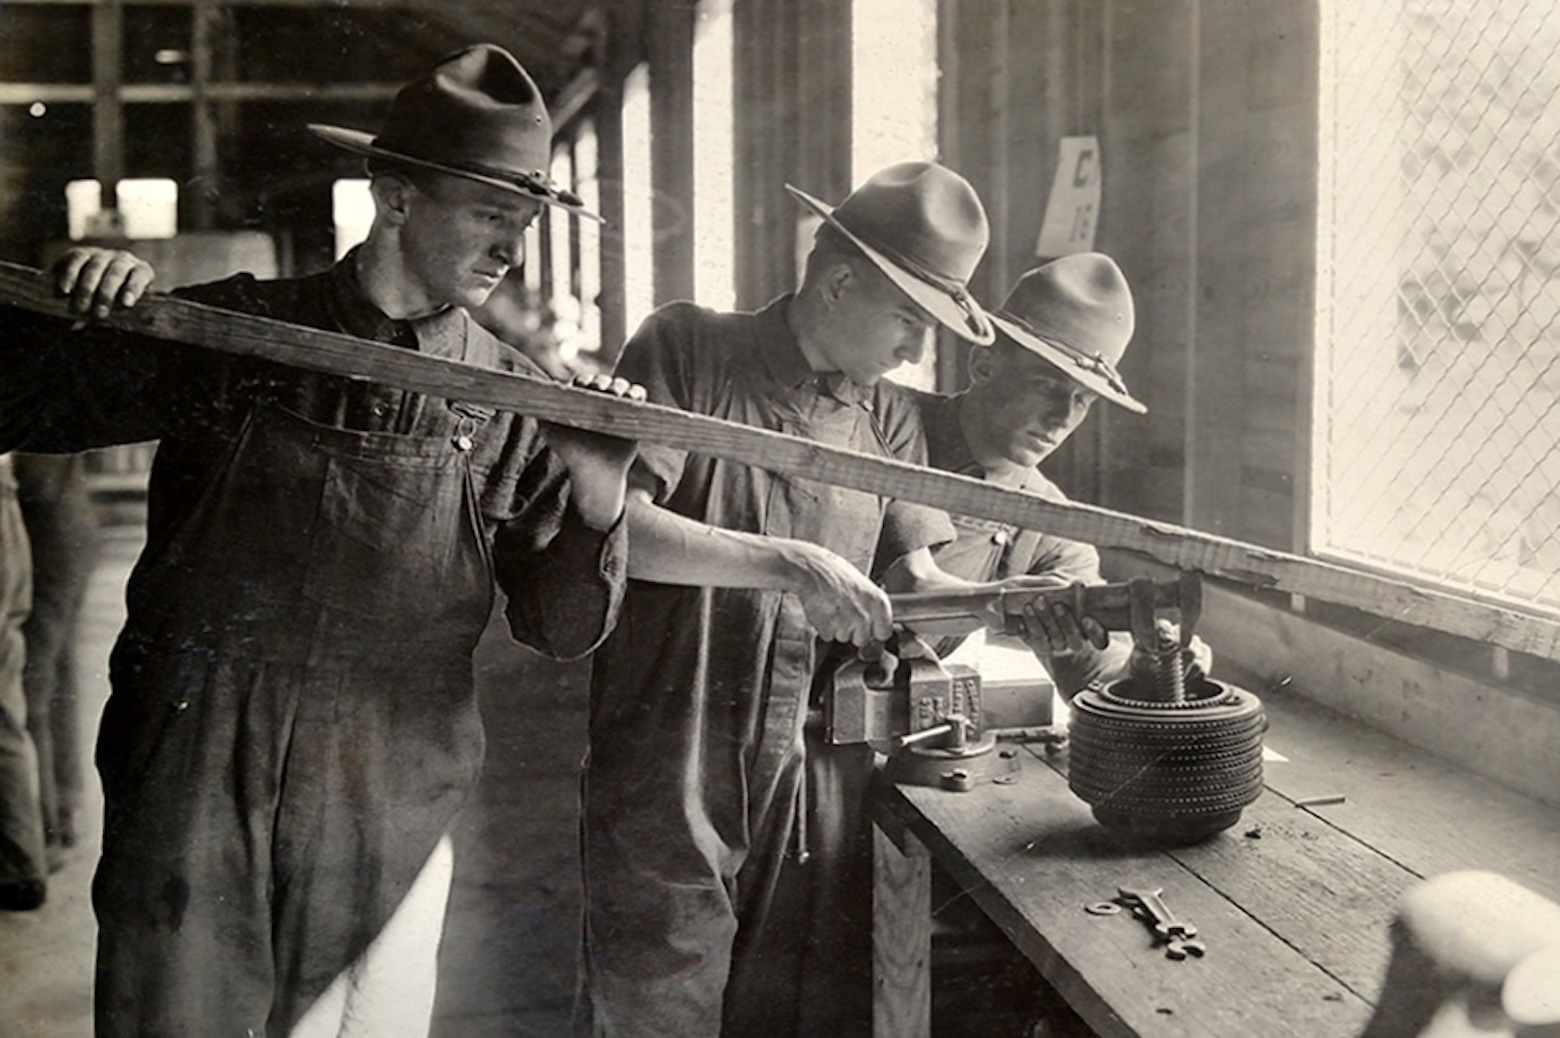 3 men working with tools